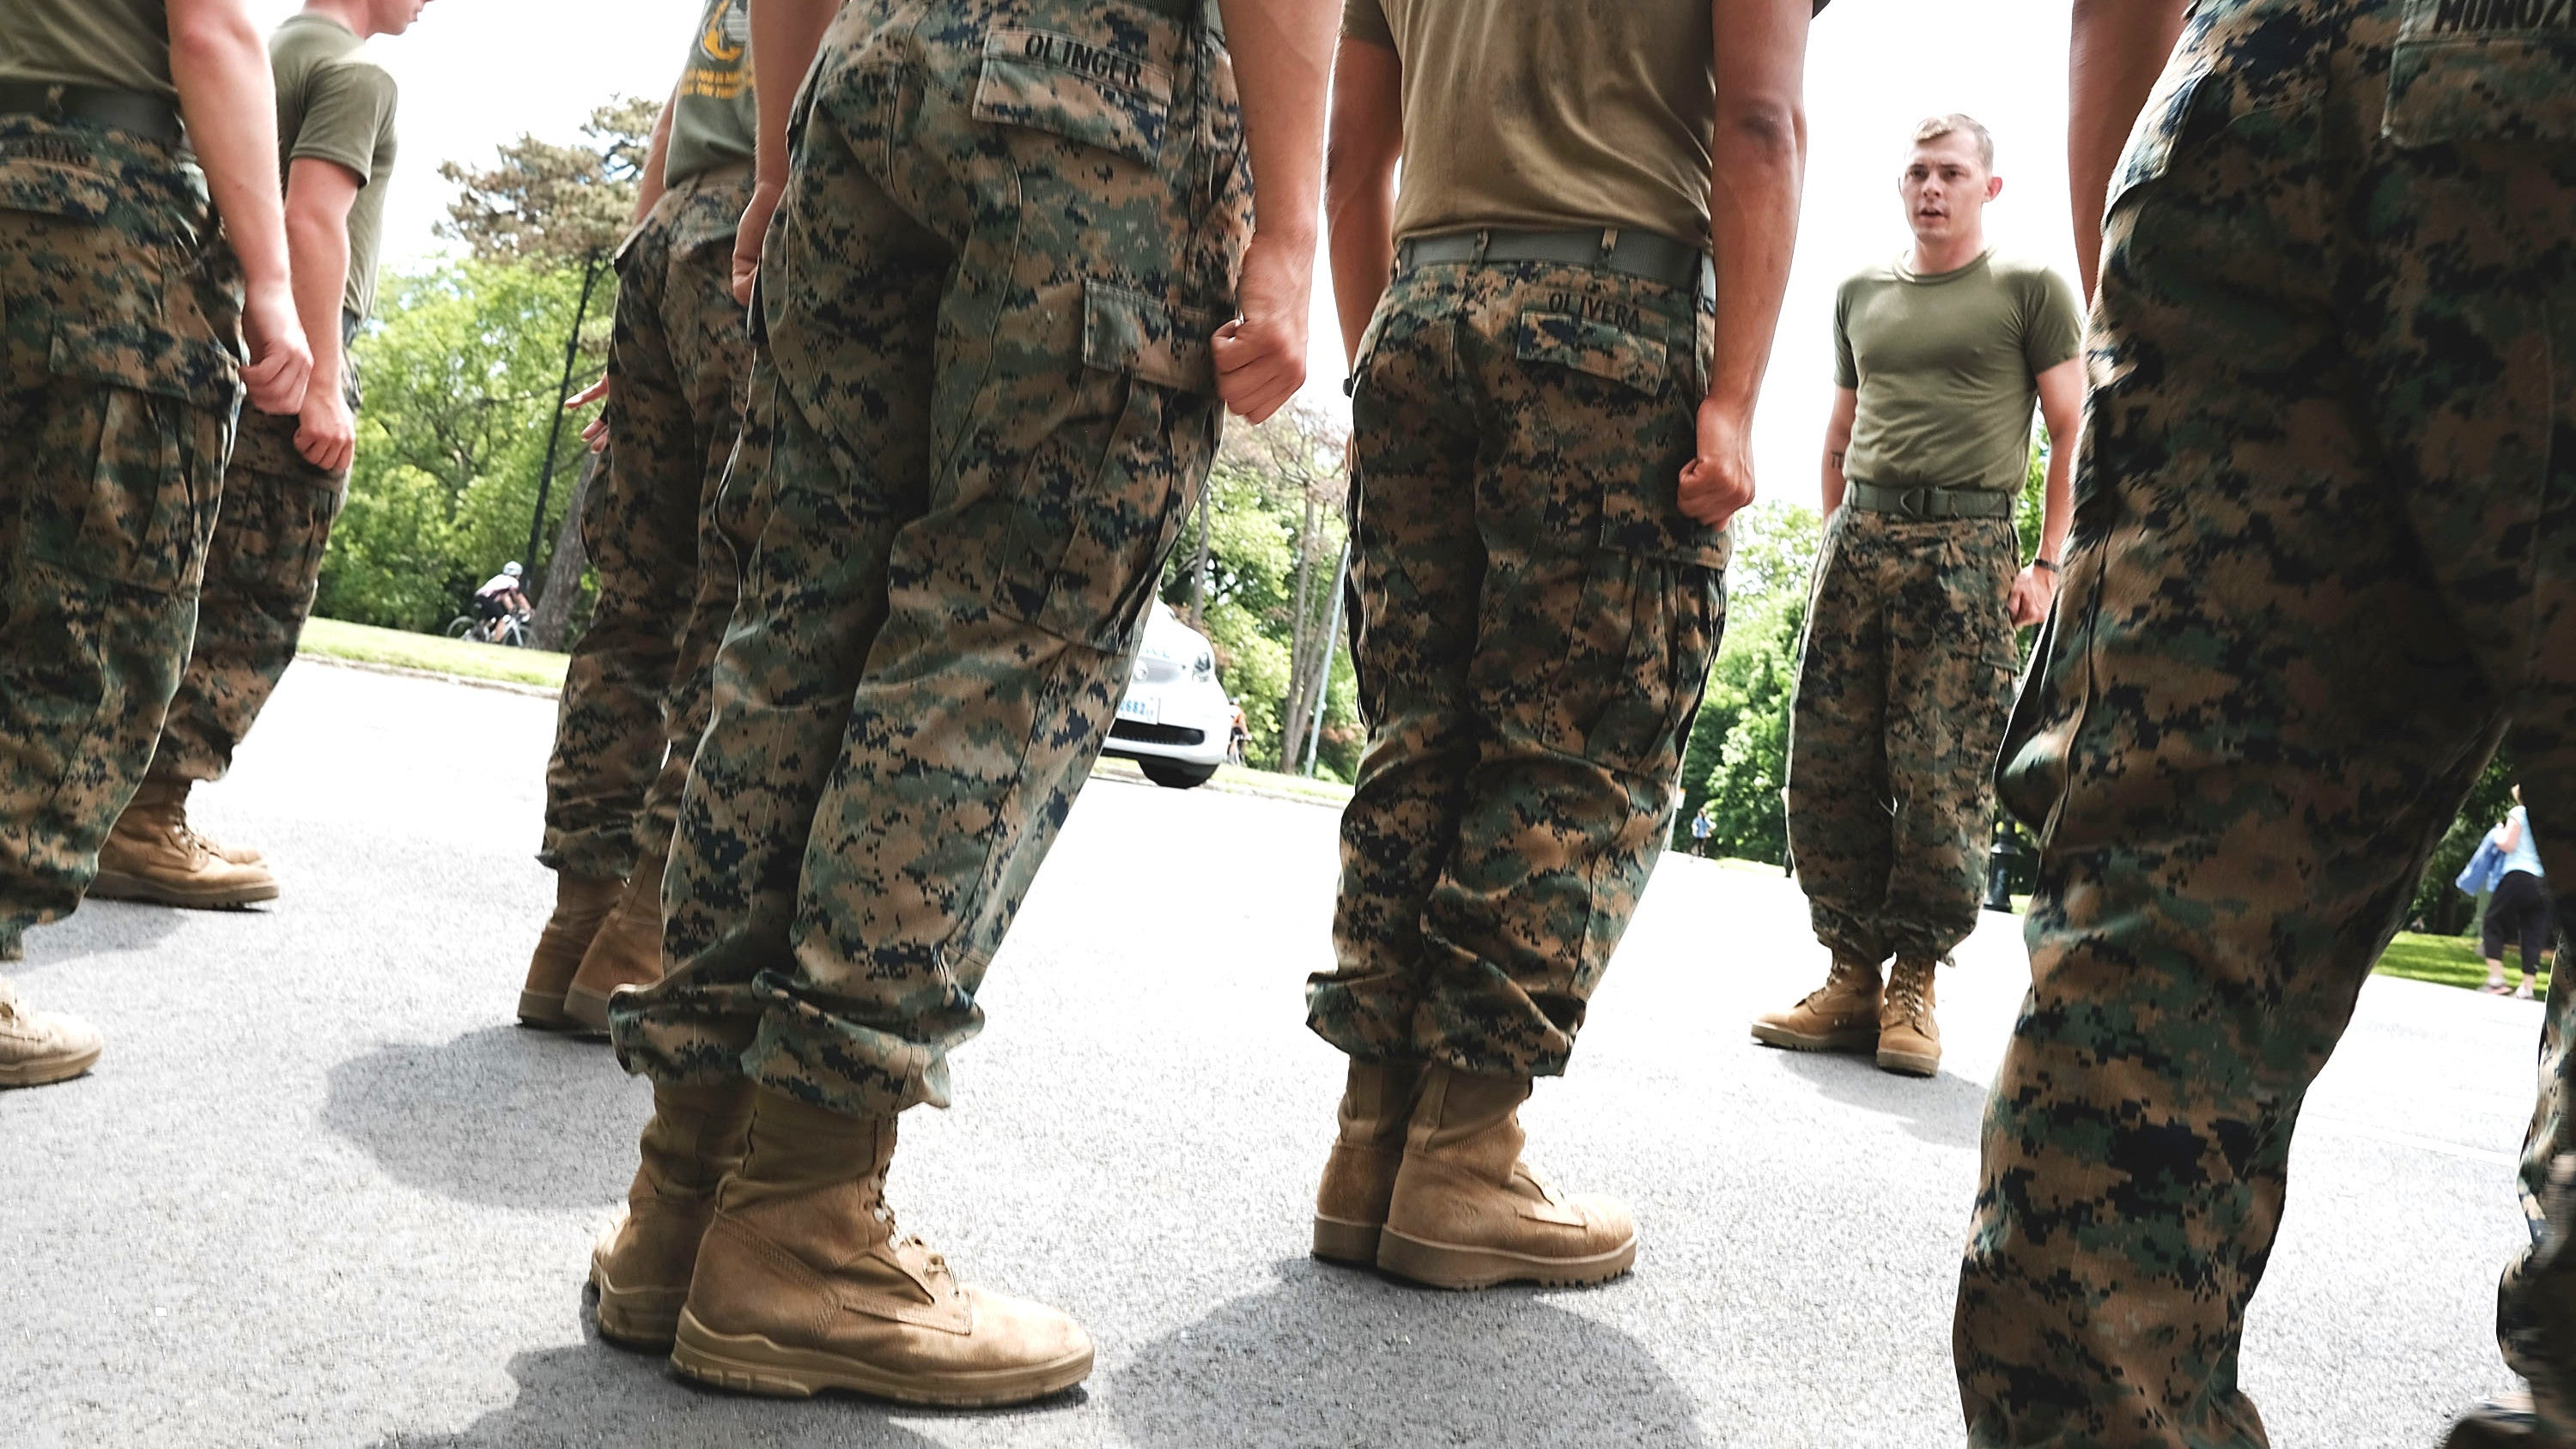 The US Military Spends More On Viagra Than On Transgender Soldiers' Medical Expenses